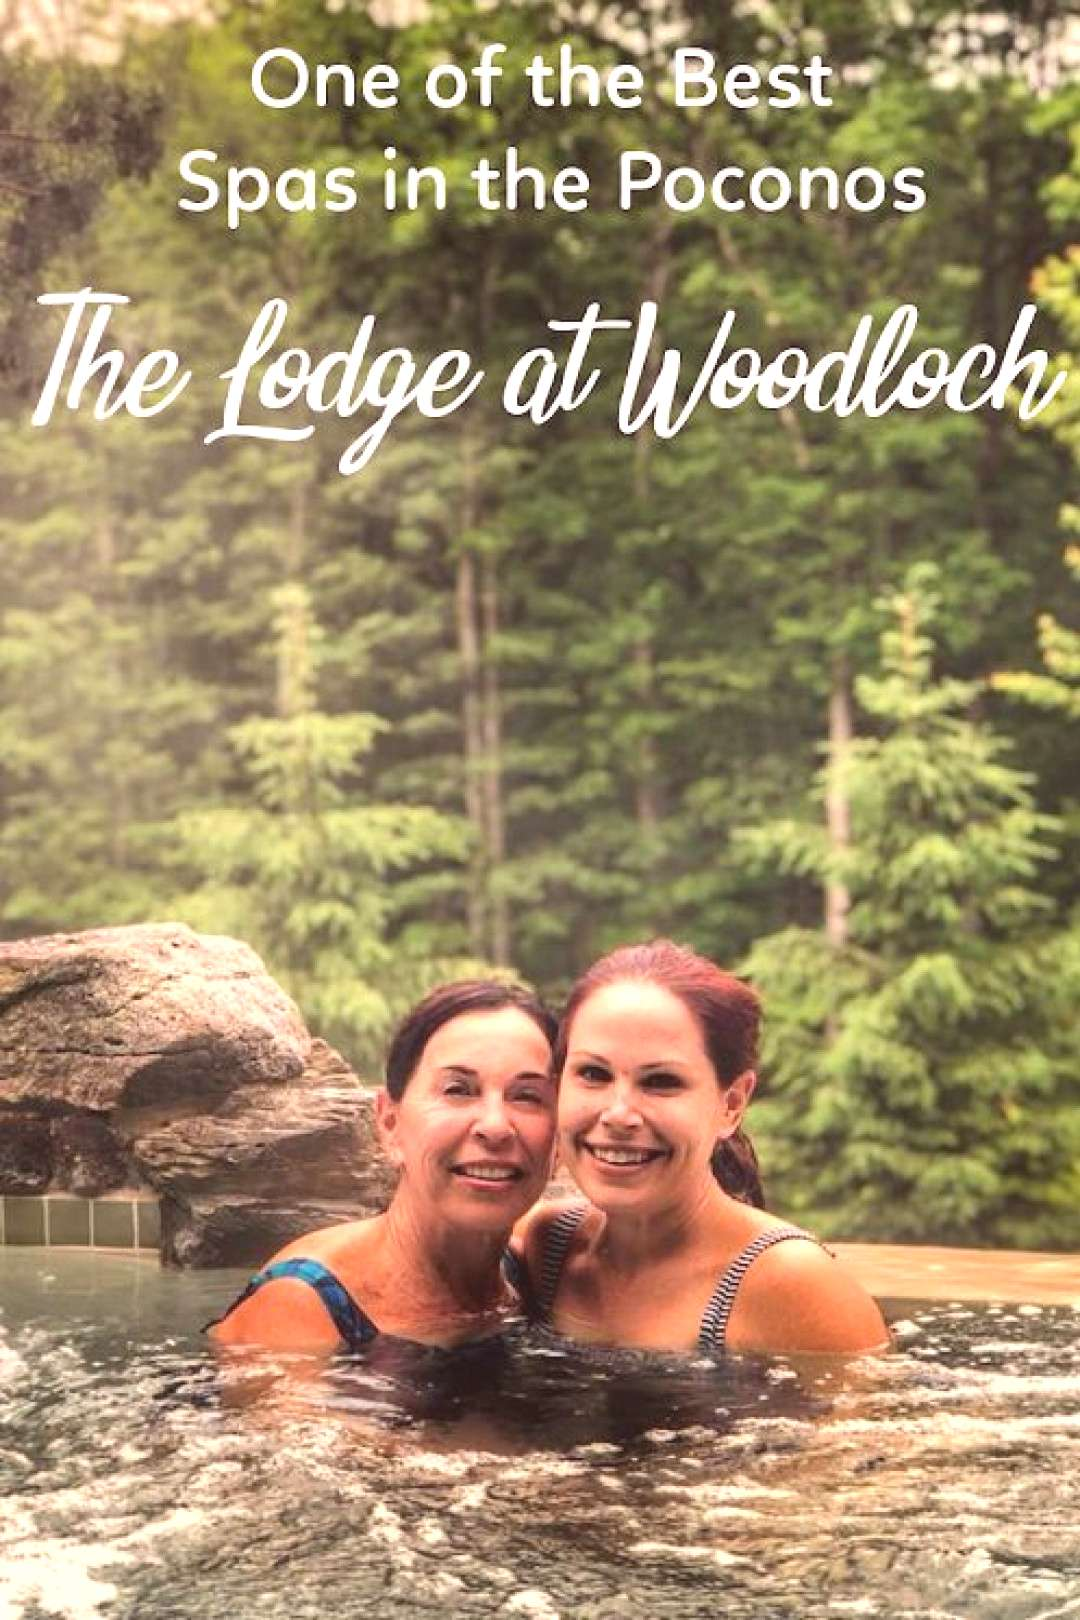 If you are looking for one of the best spas in the Poconos, look no further than The Lodge at Woodl